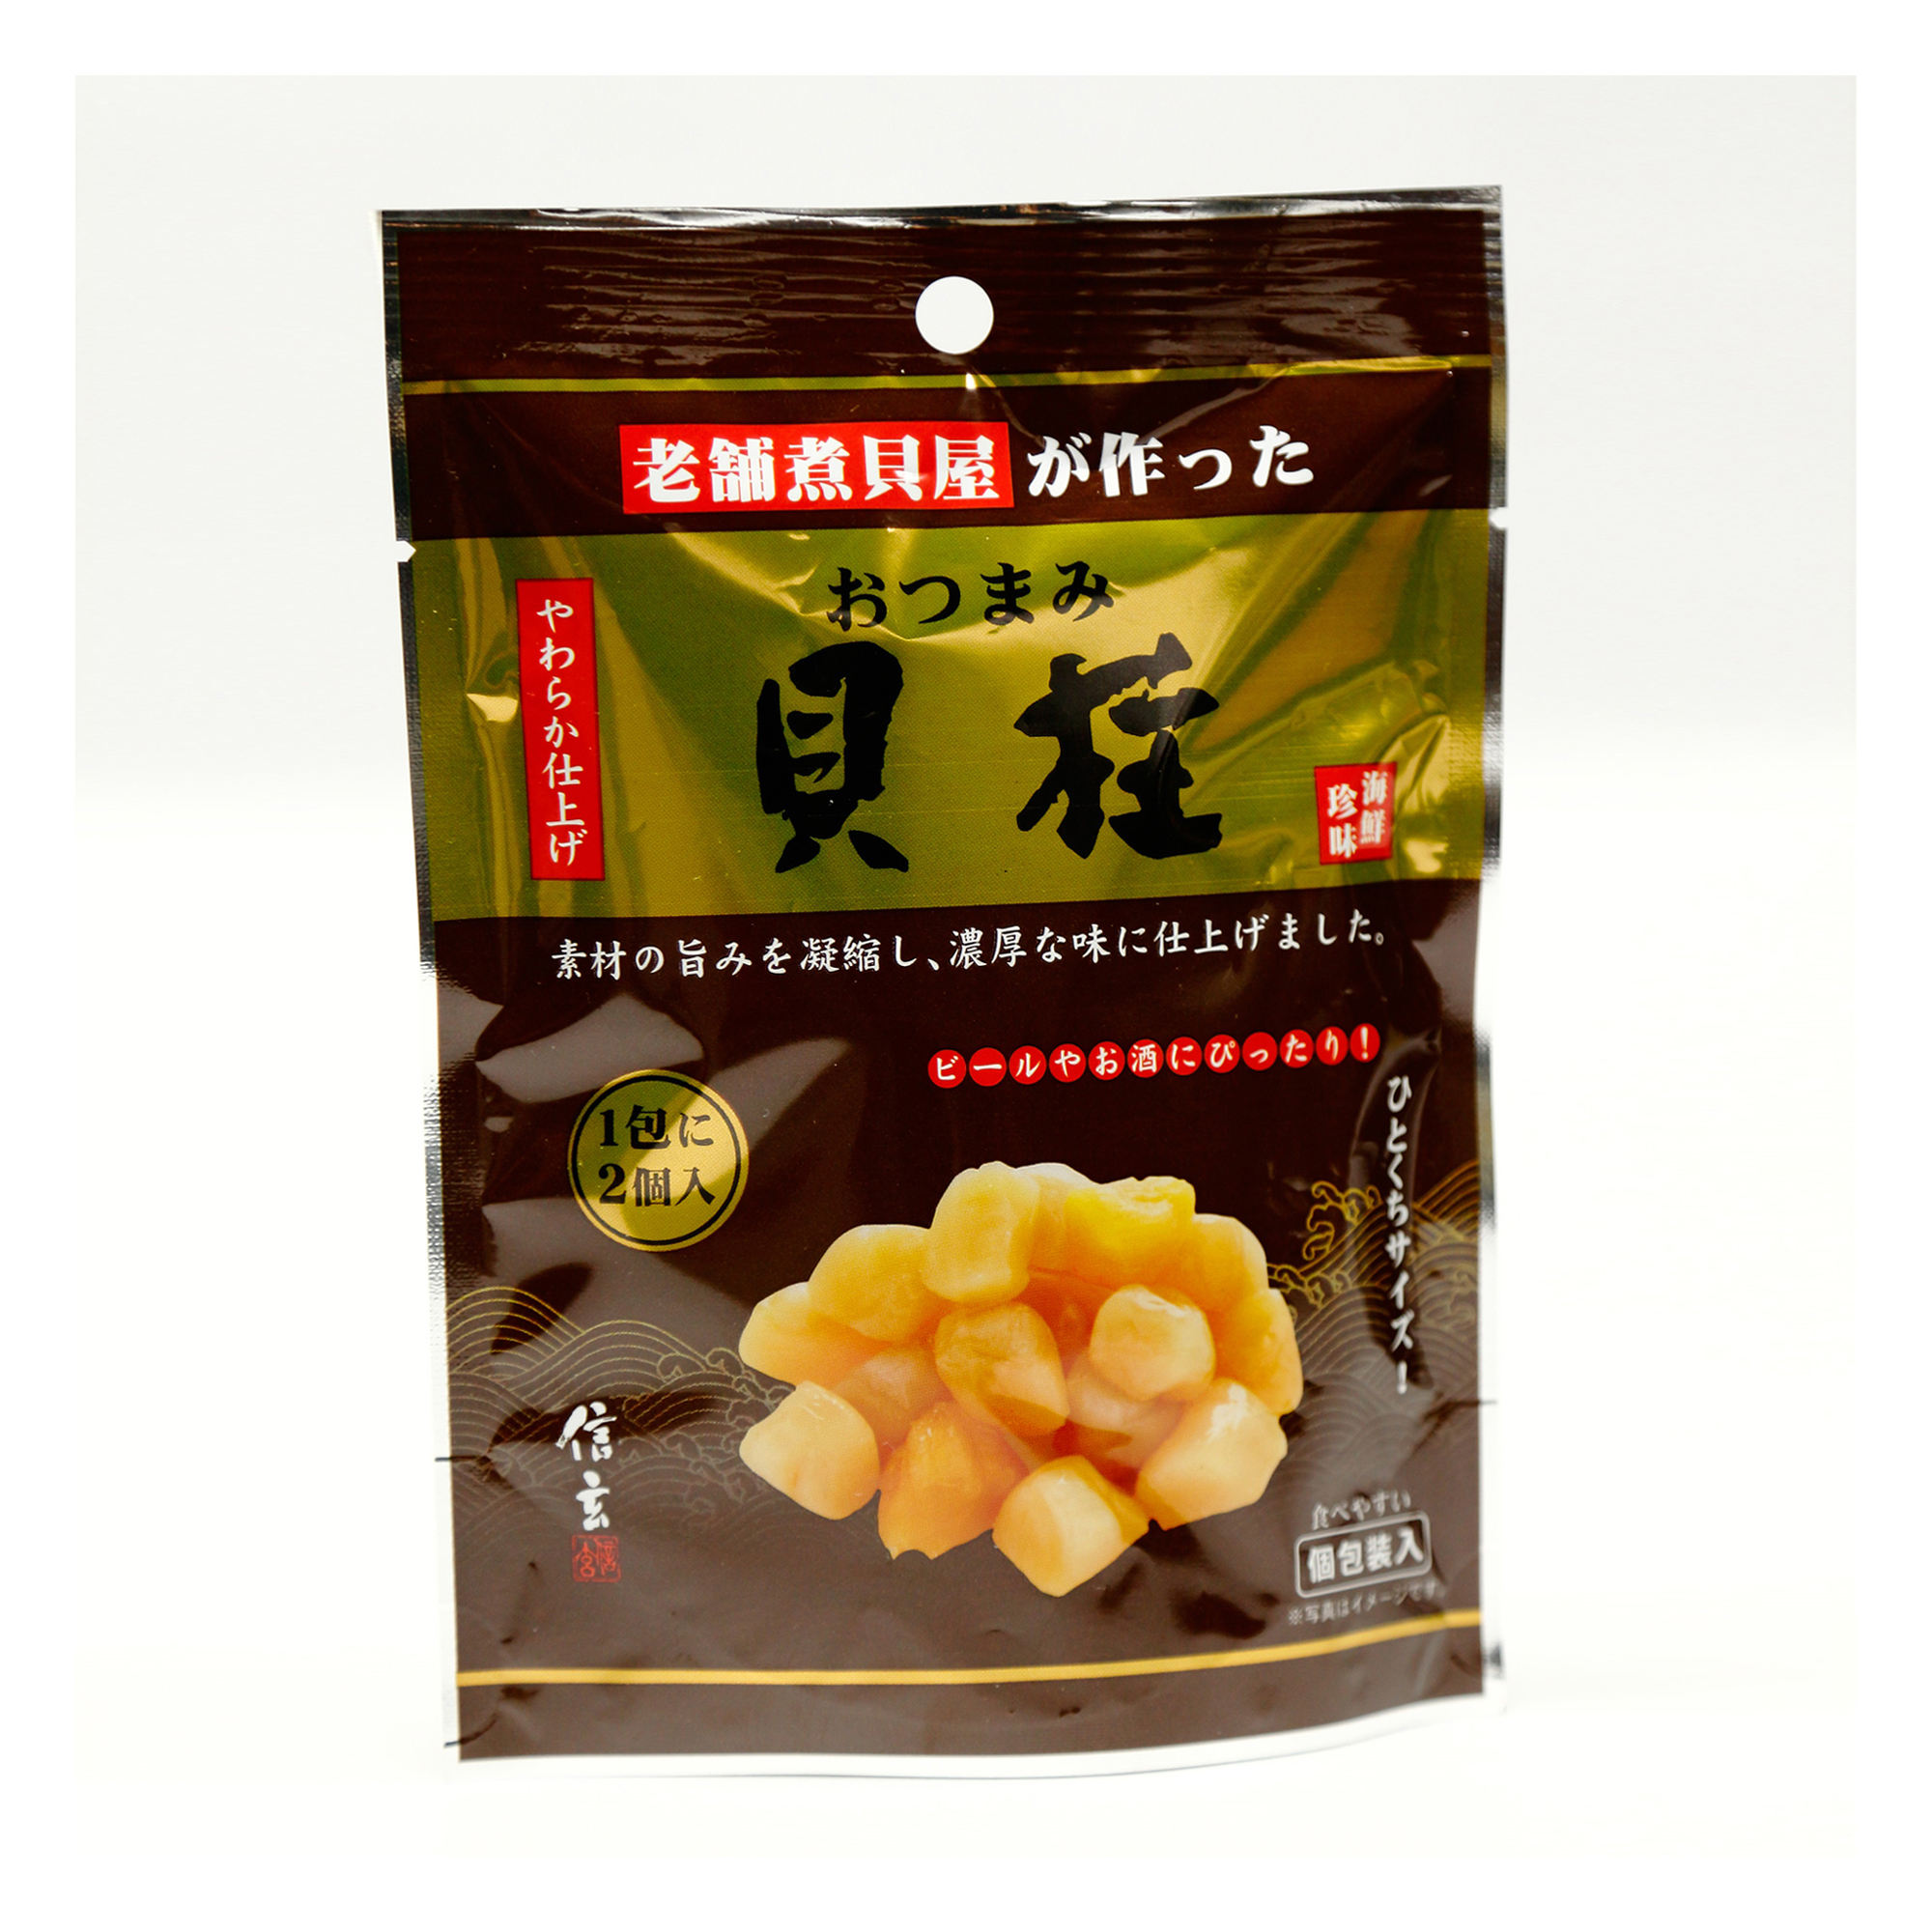 Wholesale Japan Seafood Appetizers dried scallop for annual supply